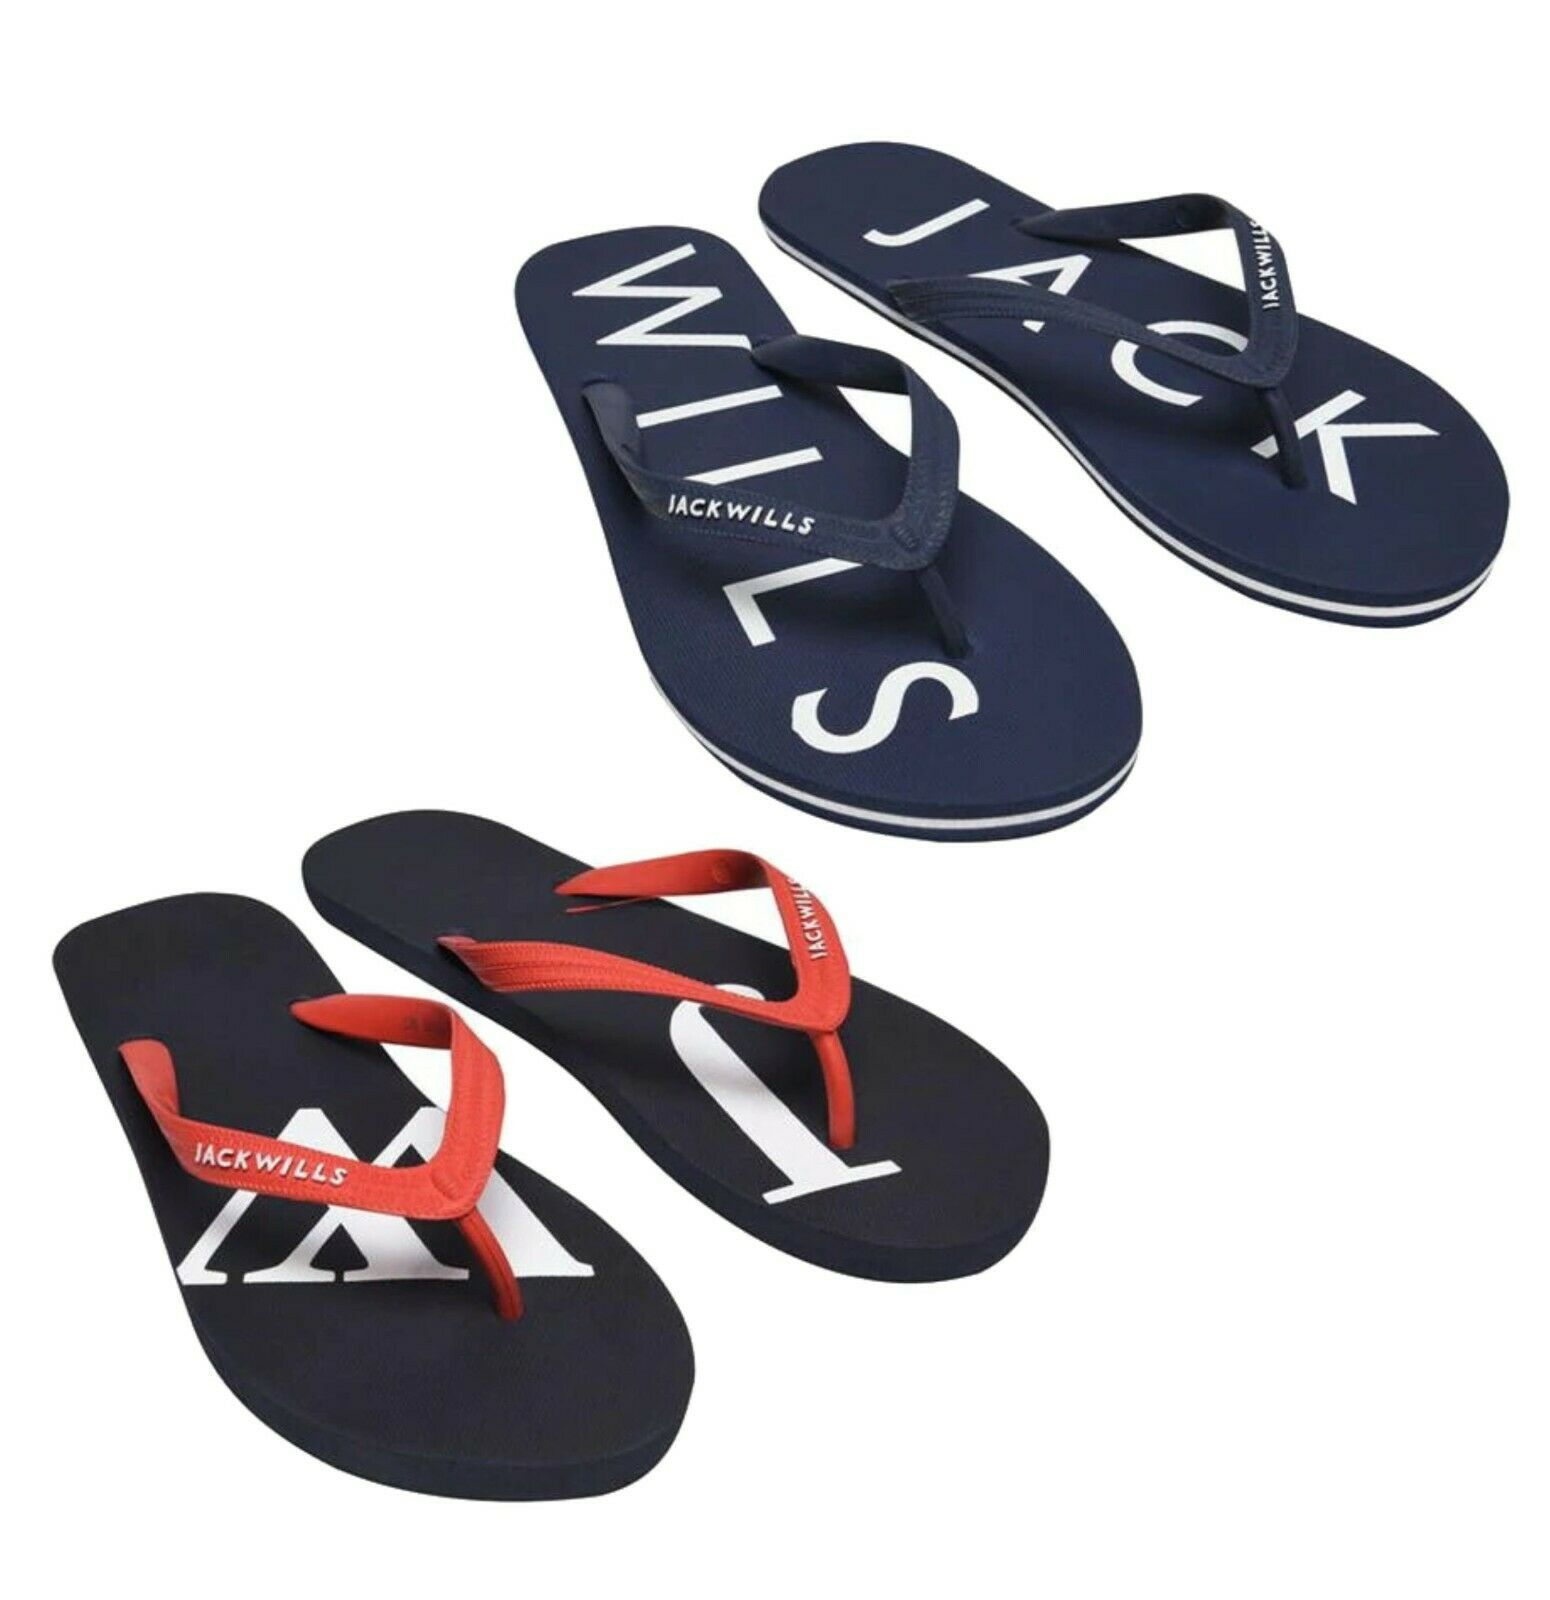 Mens Jack Wills Stylish Fiddington Core Flip Flop Sliders Sizes from 7 to 12